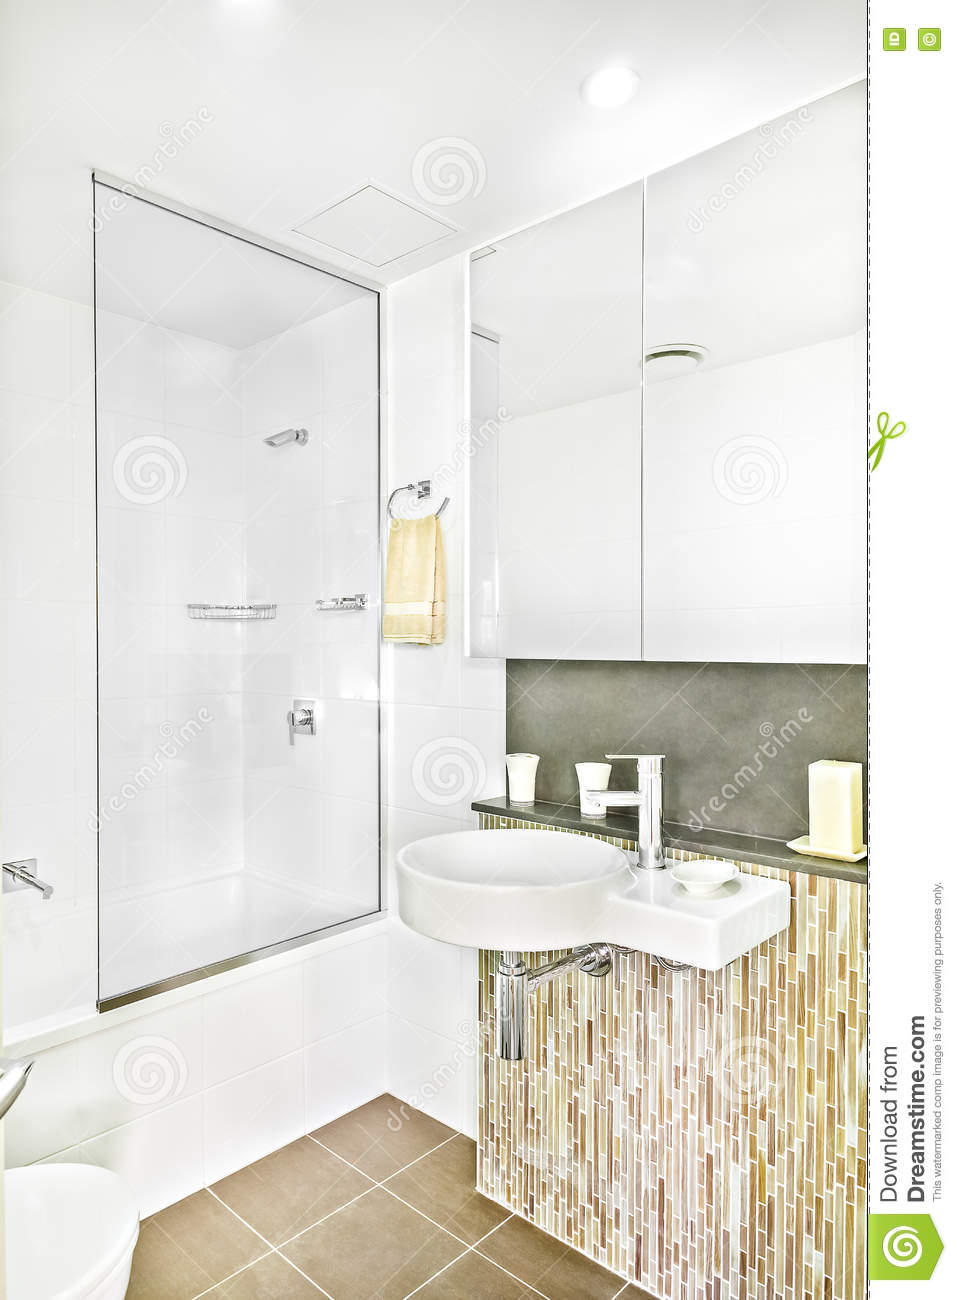 Modern wash room near mirror with tiles.